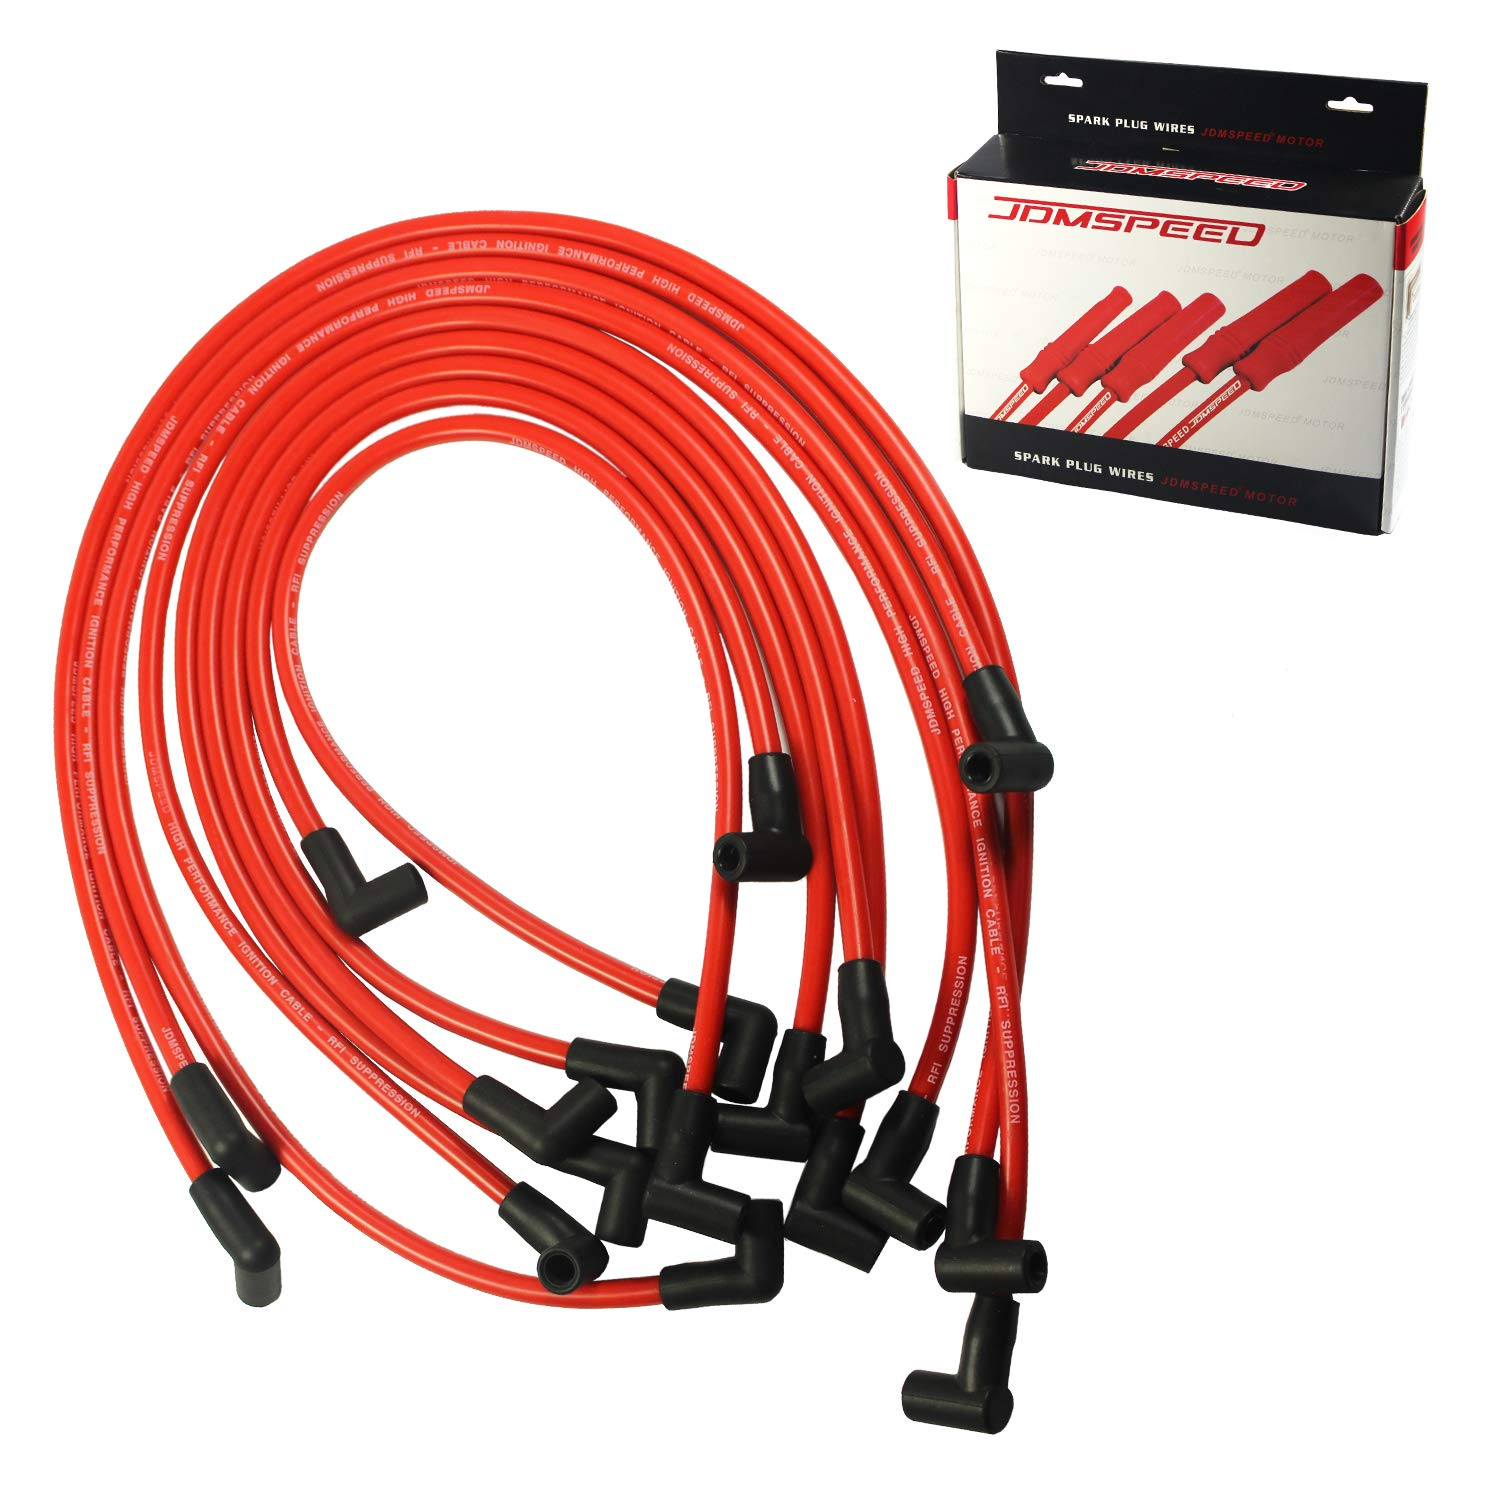 JDMSPEED New 10.5mm Spark Plug Wire Set Replacement for HEI SBC BBC 350 383 454 Electronic